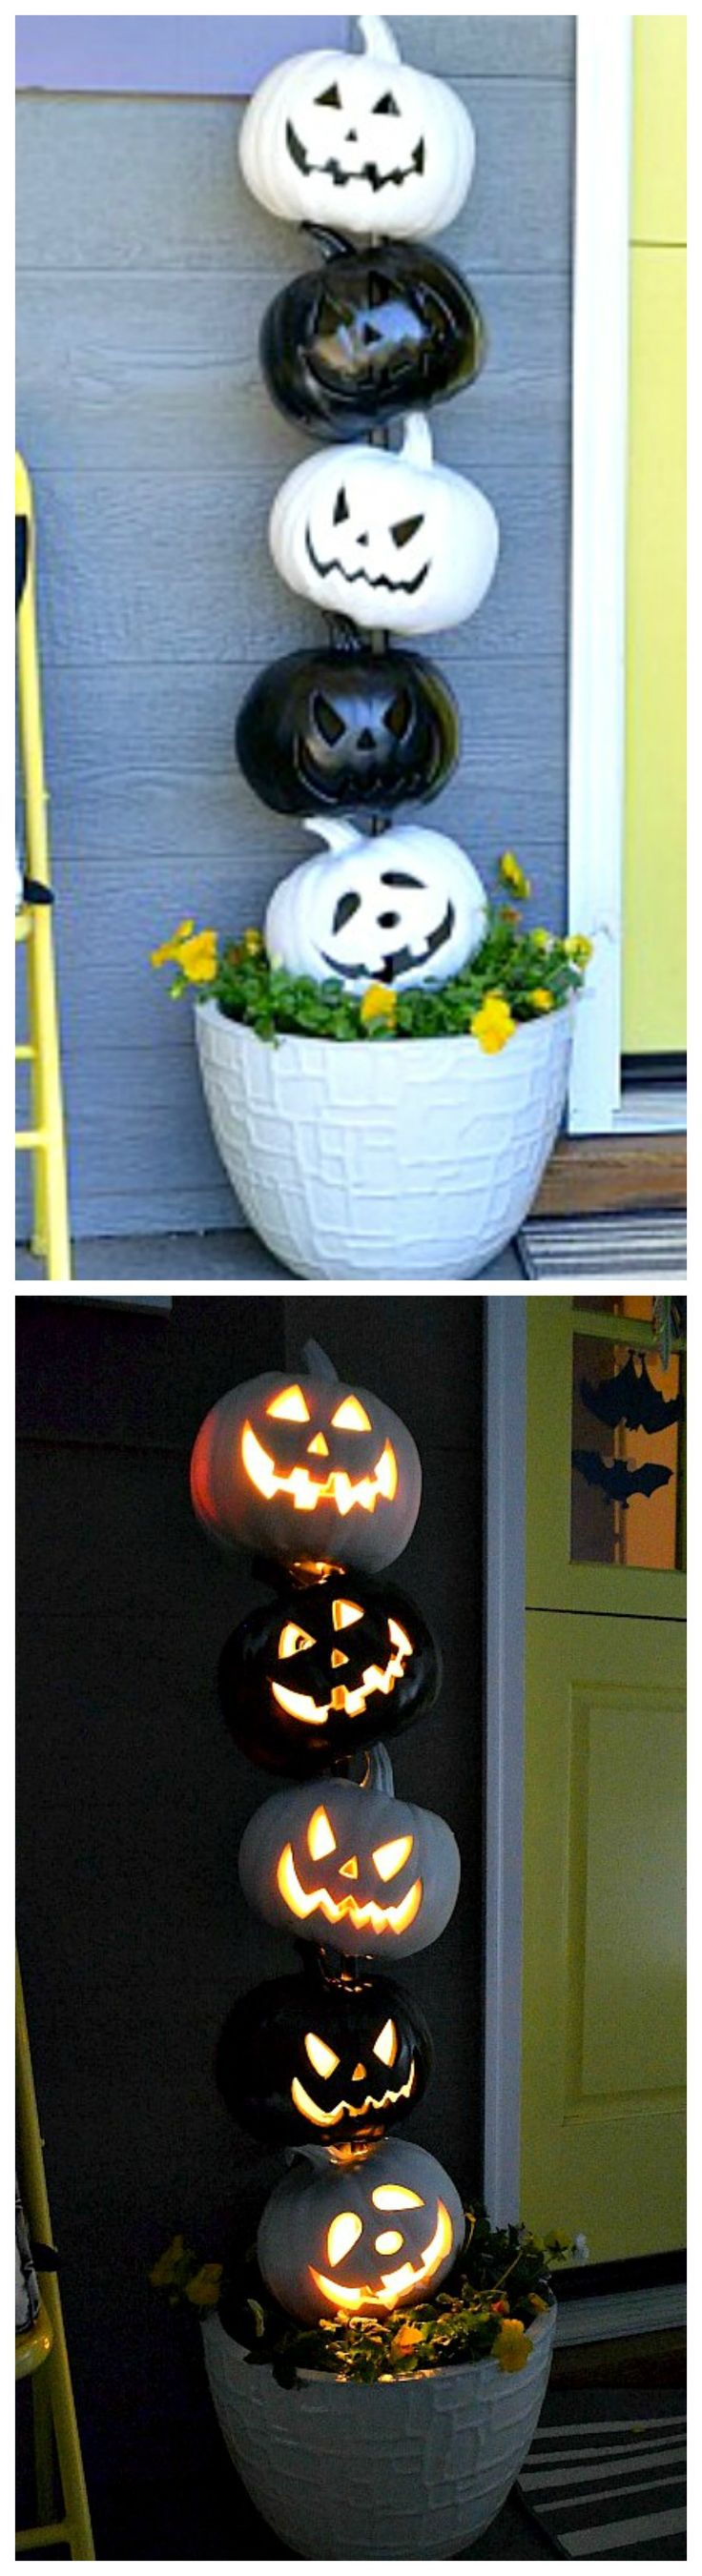 276 best Halloween images on Pinterest Halloween prop, Halloween - diy outdoor halloween decorations